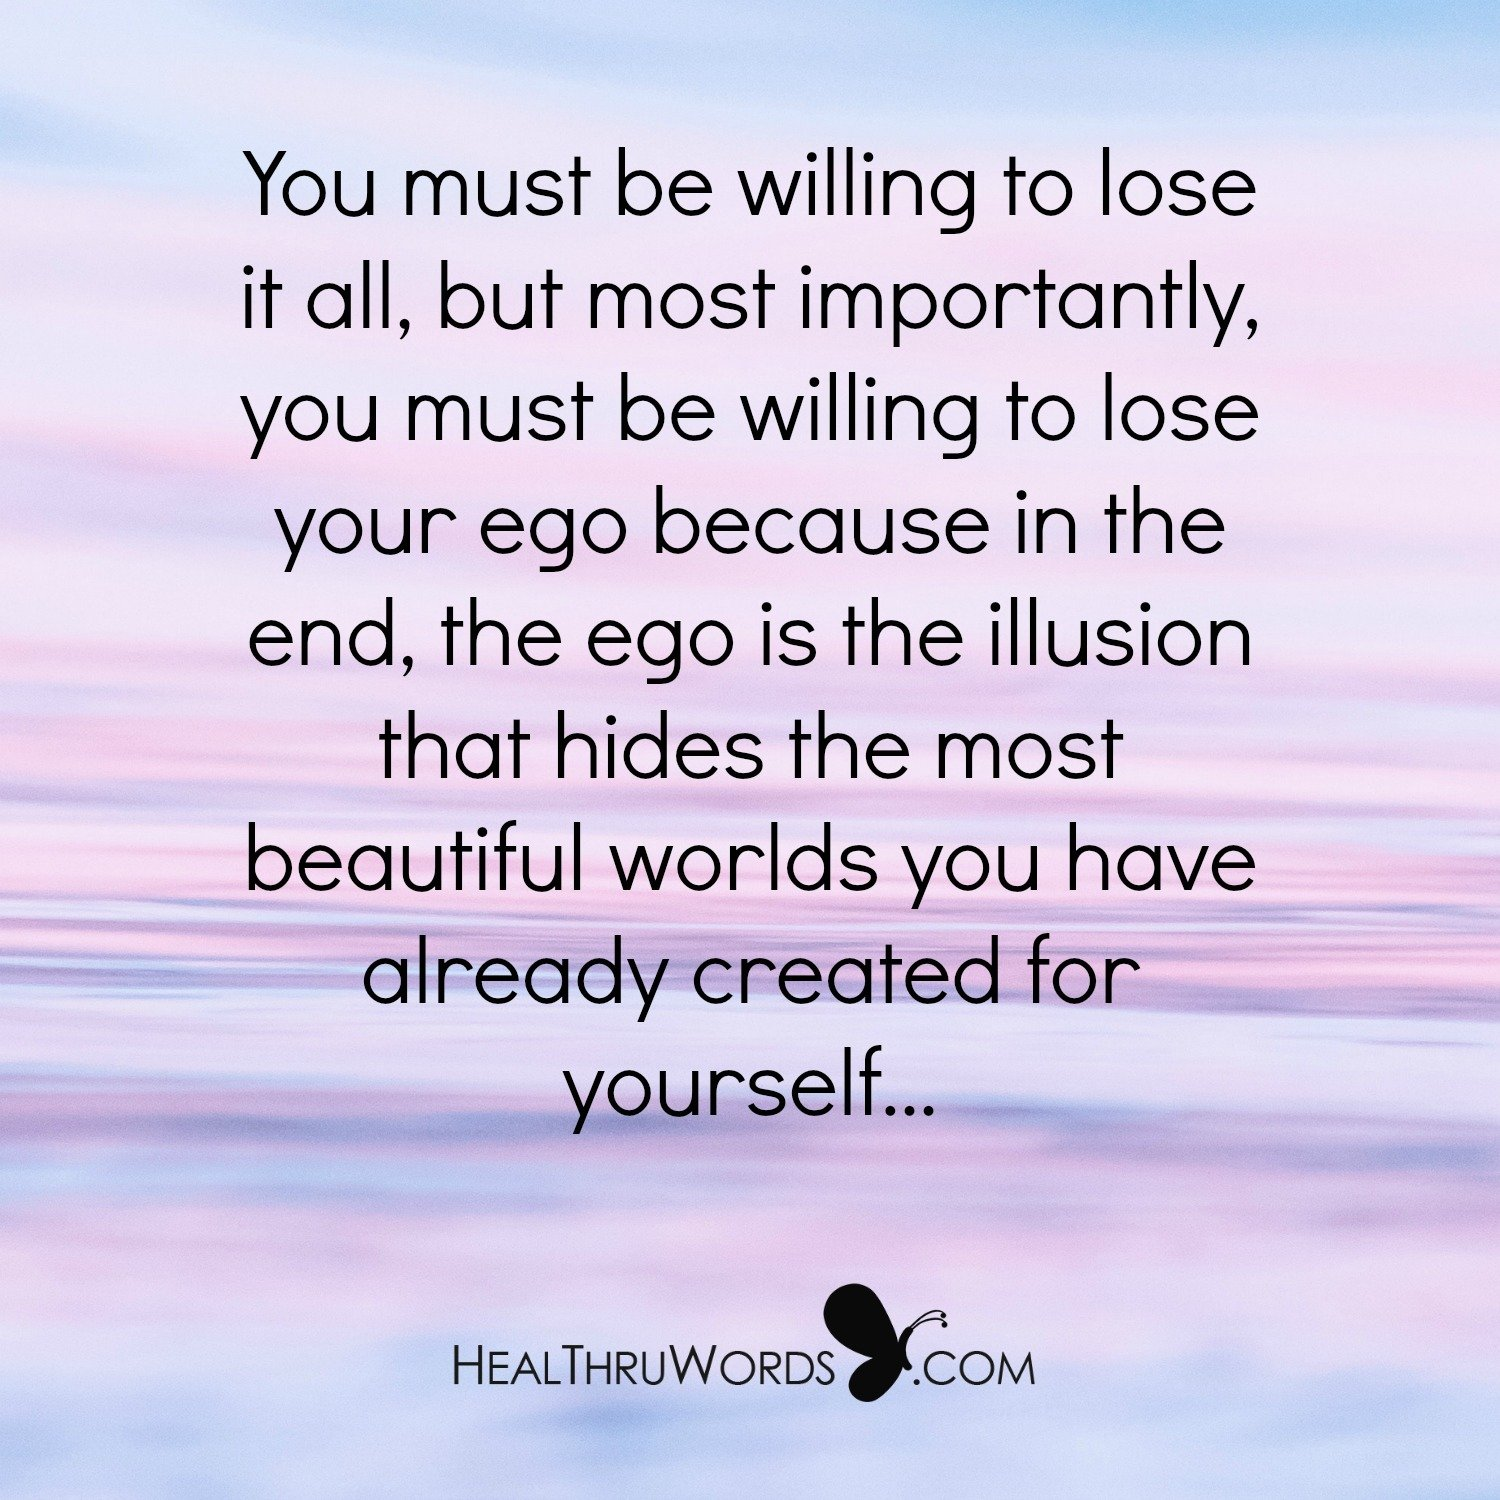 Inspirational Image: Fear to Lose The Ego